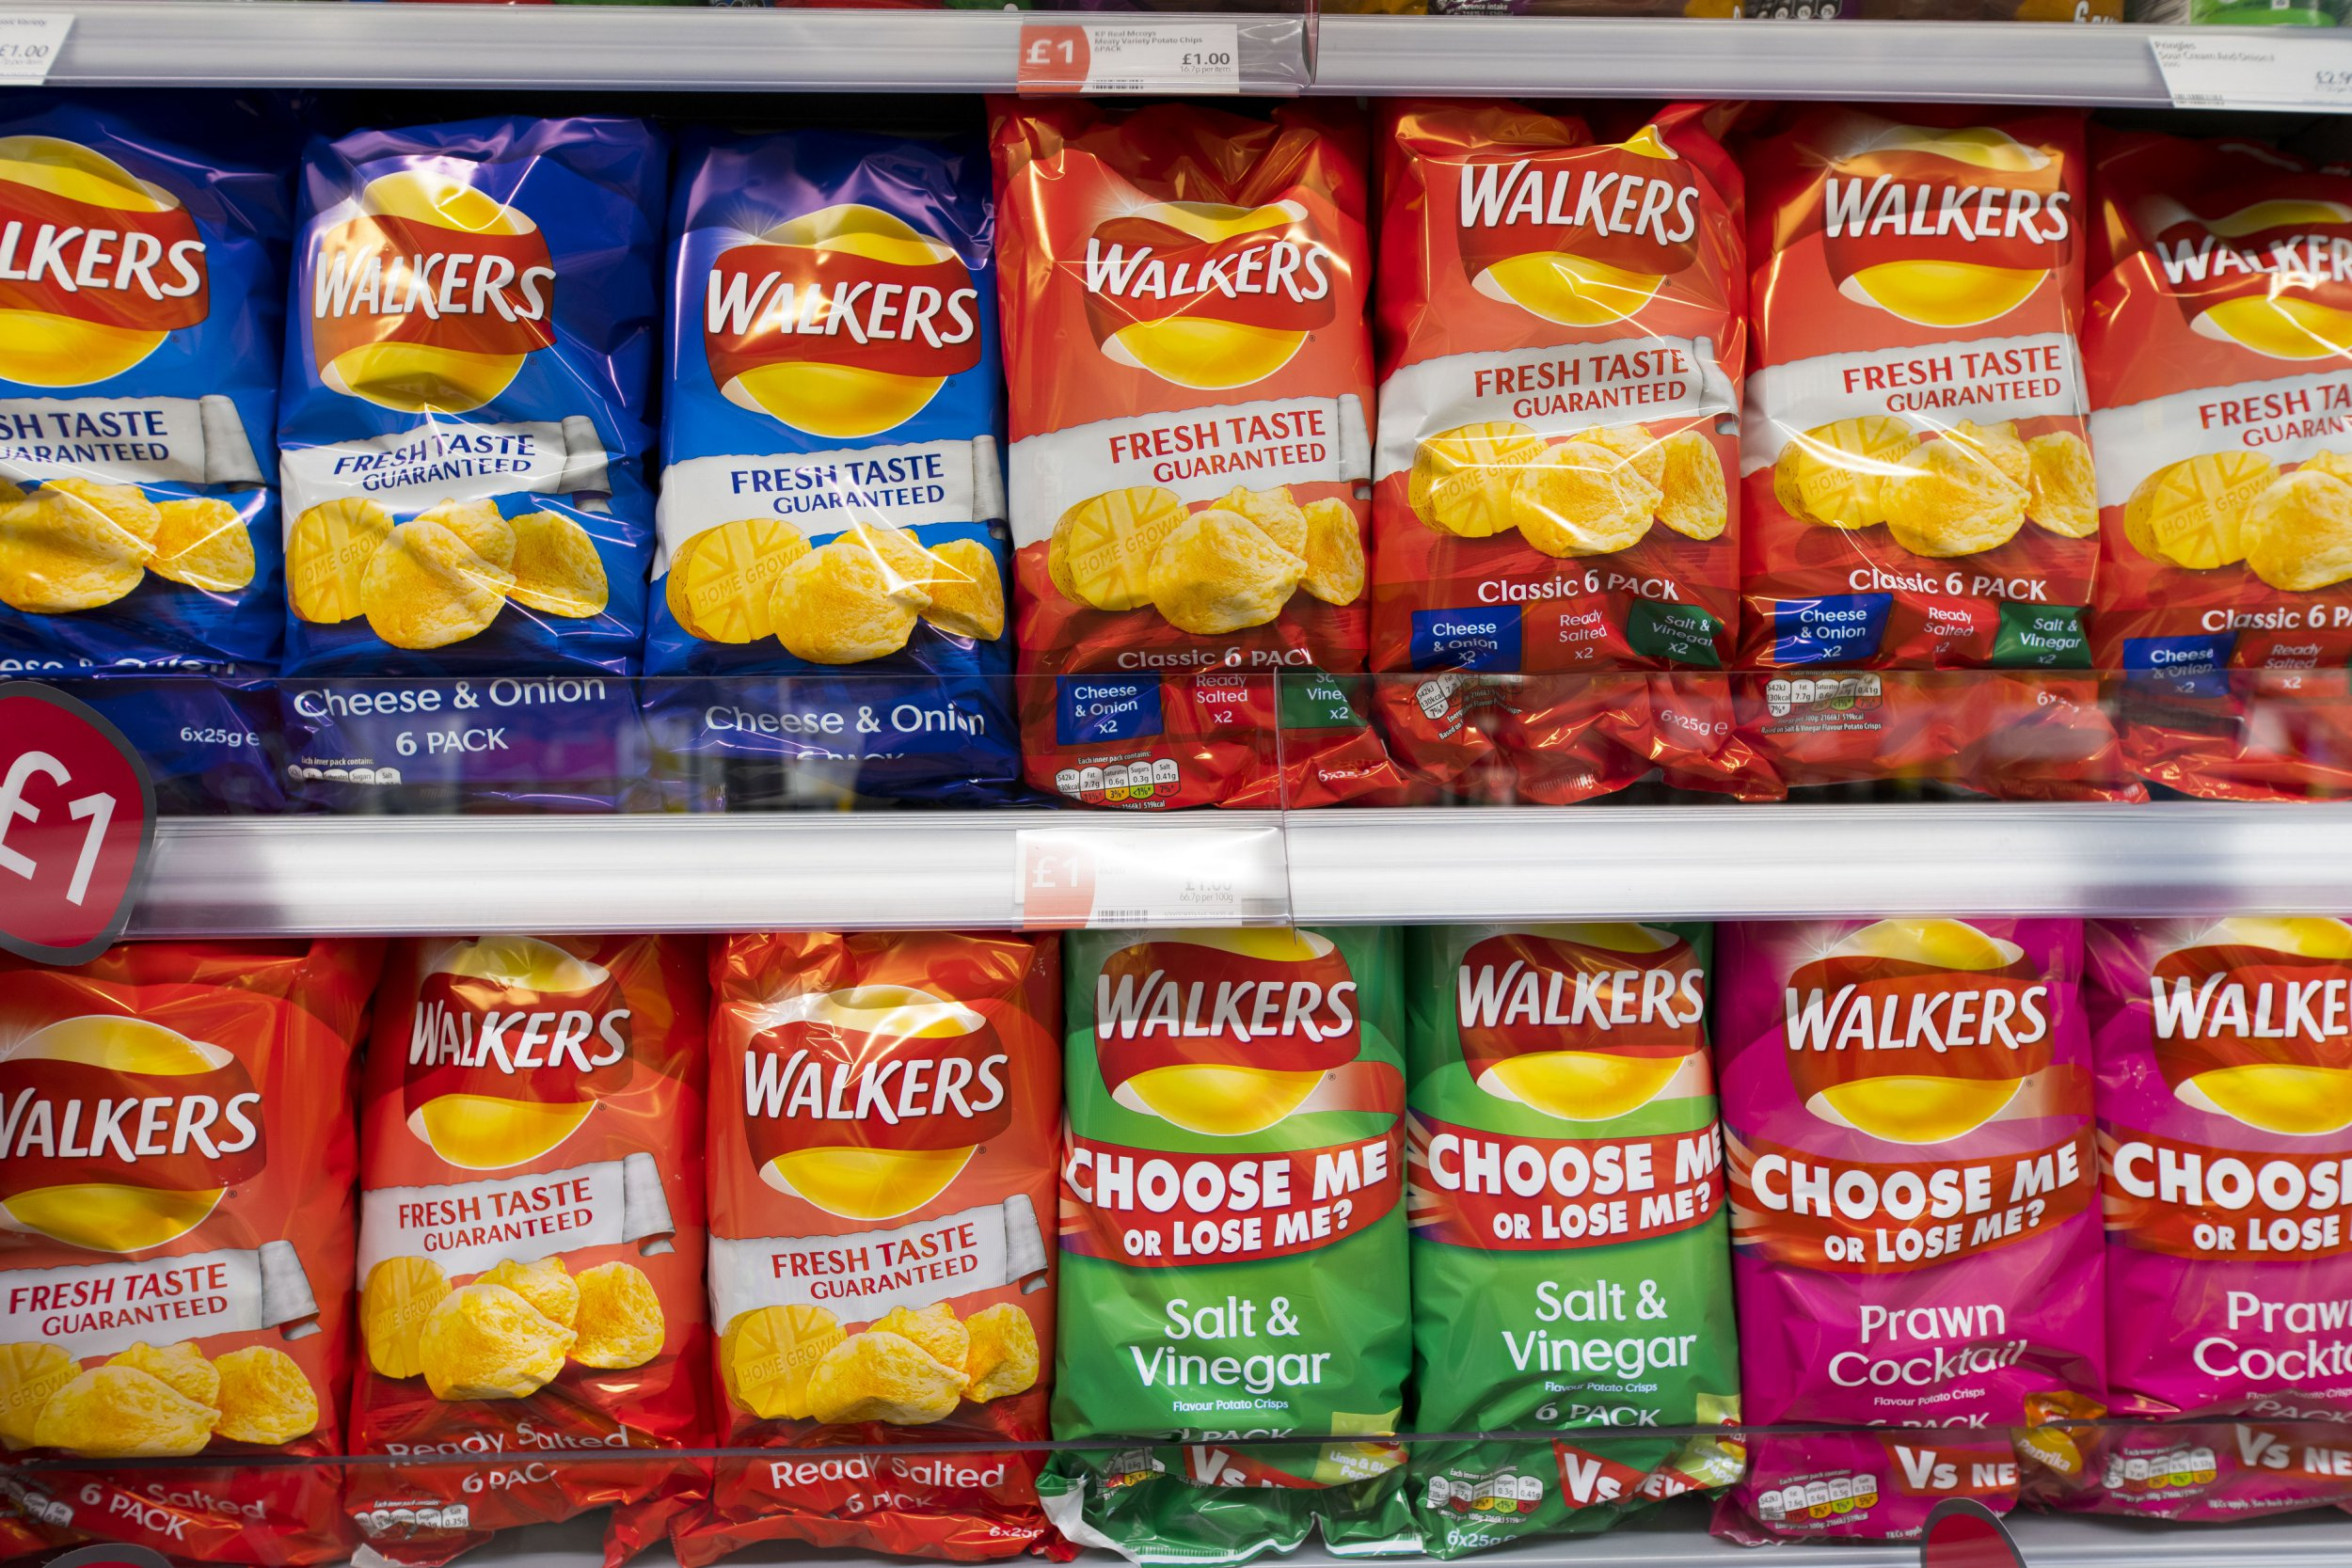 Walkers has recycled more than 500,000 crisp packets in the last three months